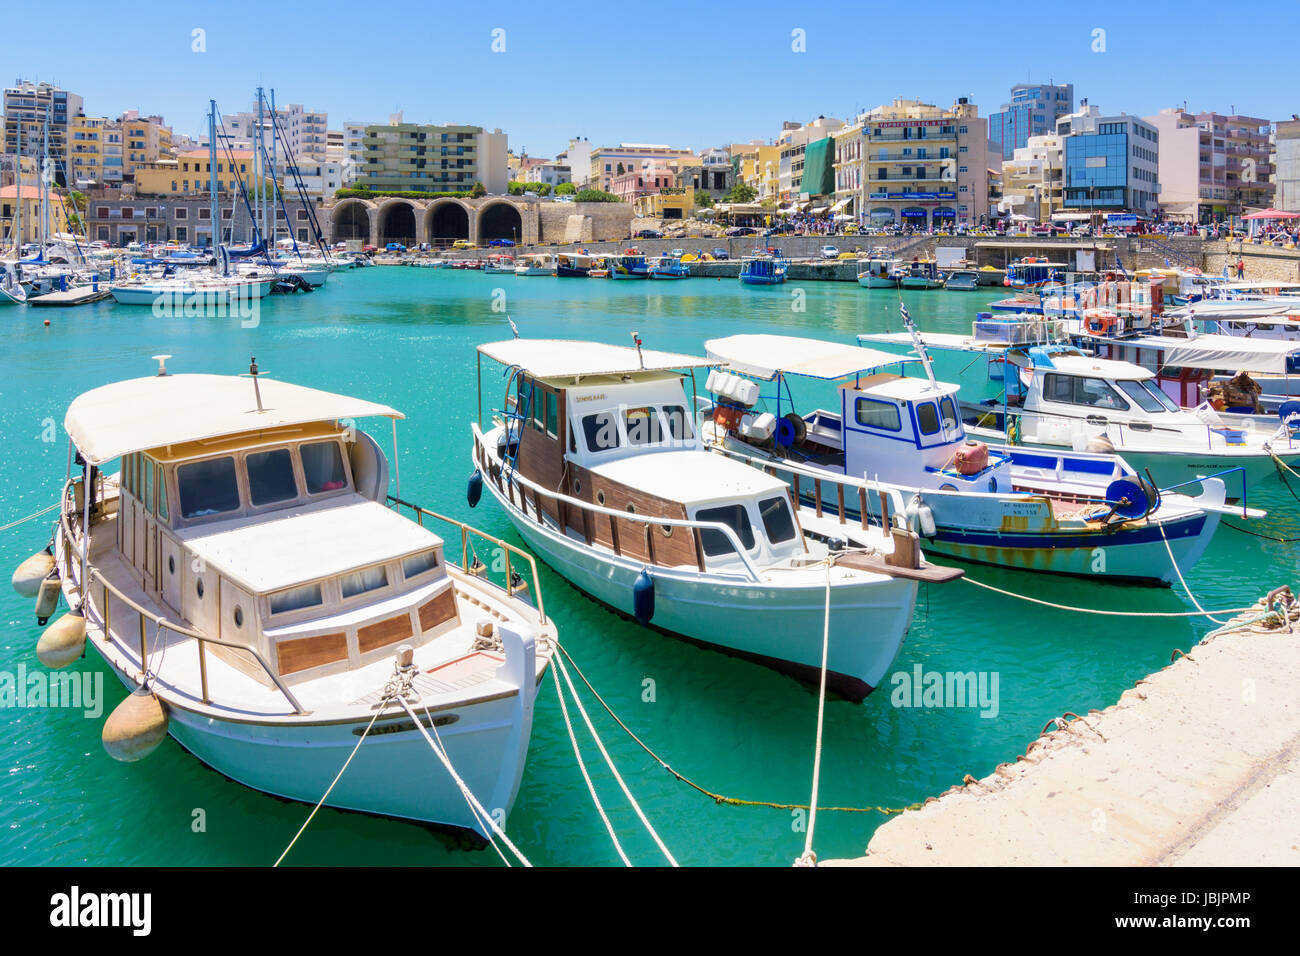 Moored fishing boats in the old Venetian Harbour of Heraklion, Crete, Greece - Stock Image